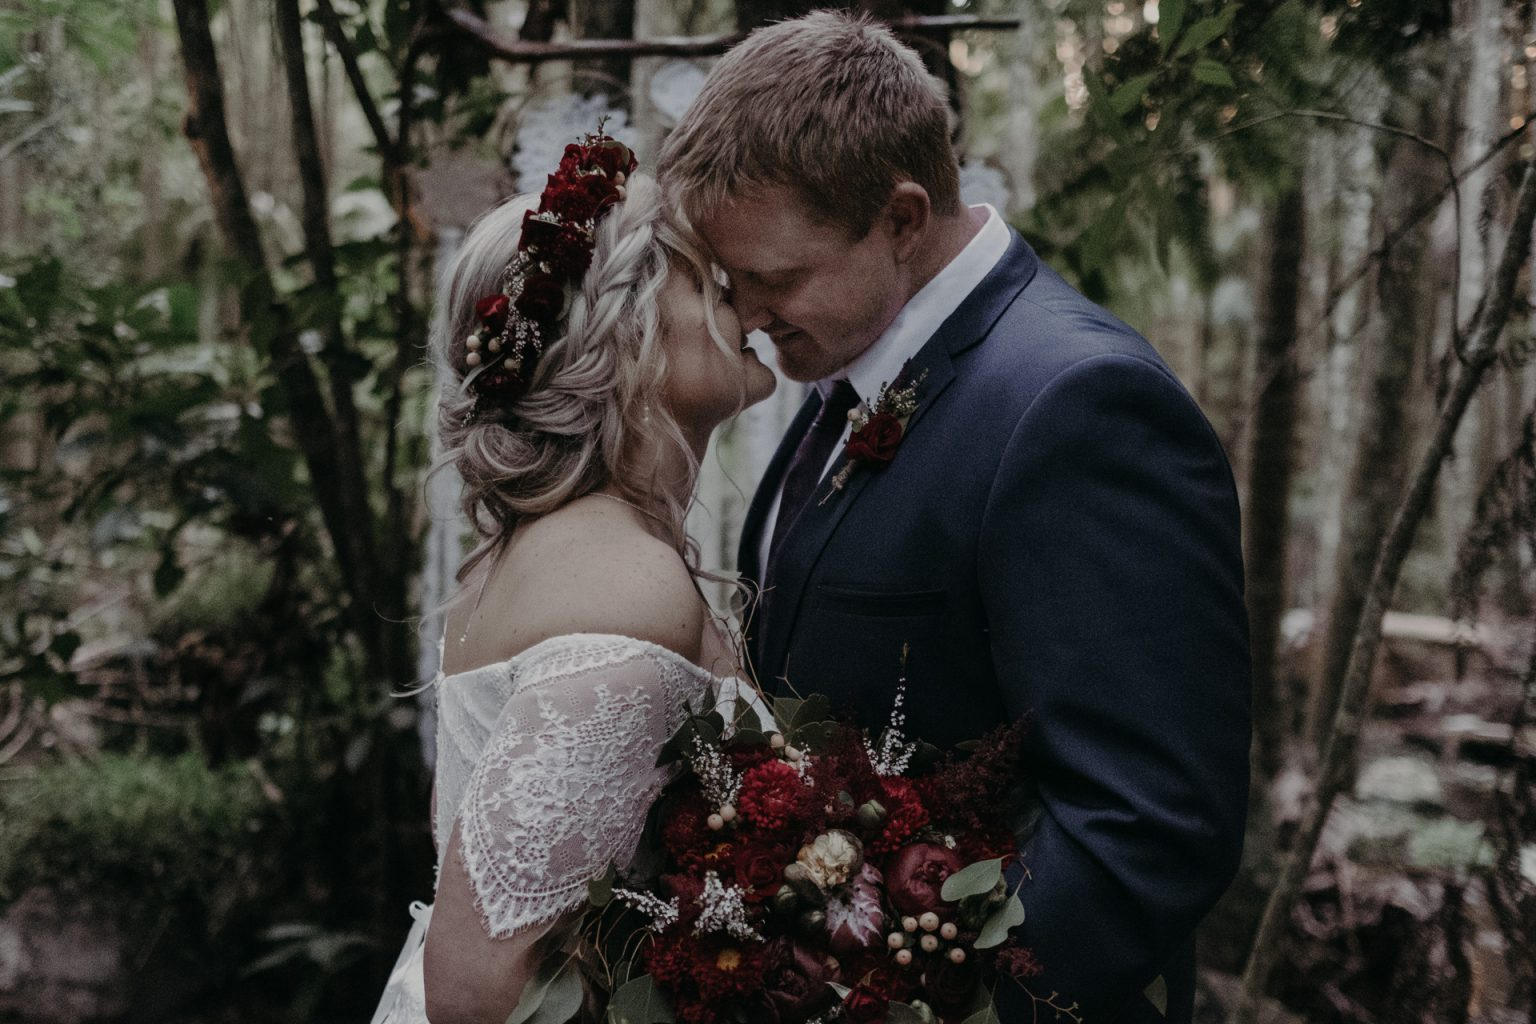 bride and groom at forest alter elopement ceremony kiss